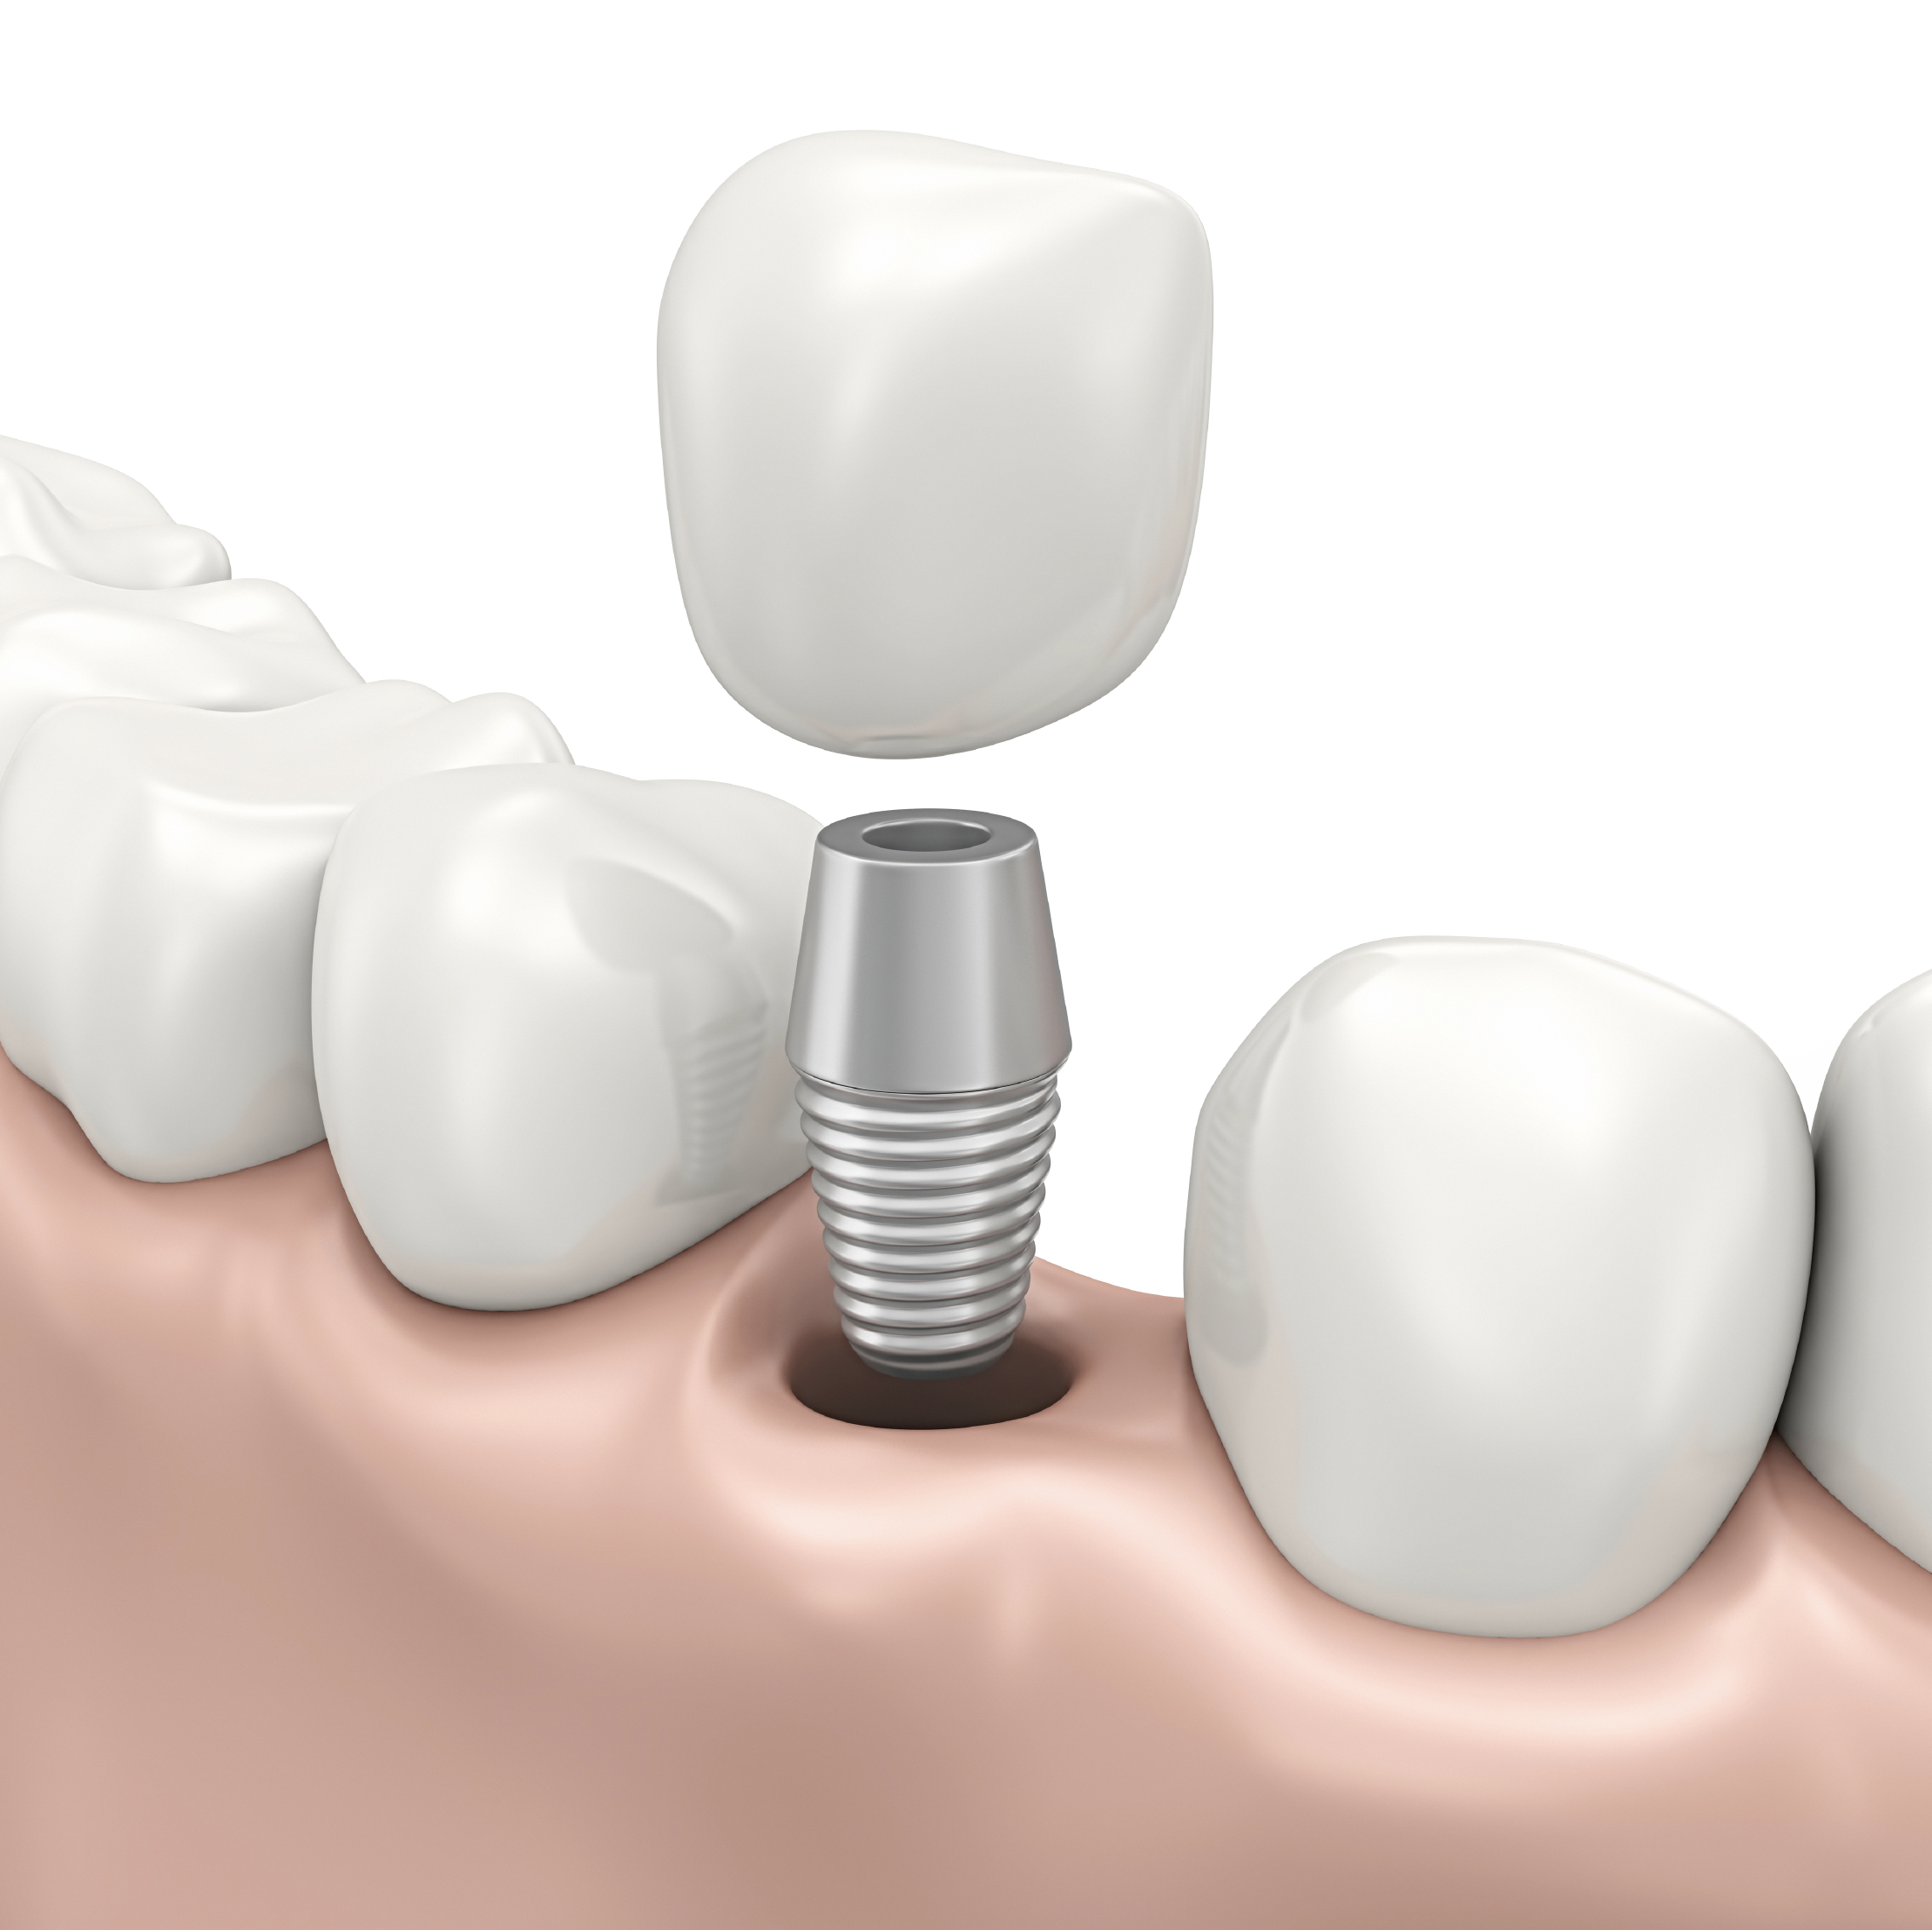 Dental Implant Options in Brooklyn - Crowns & More